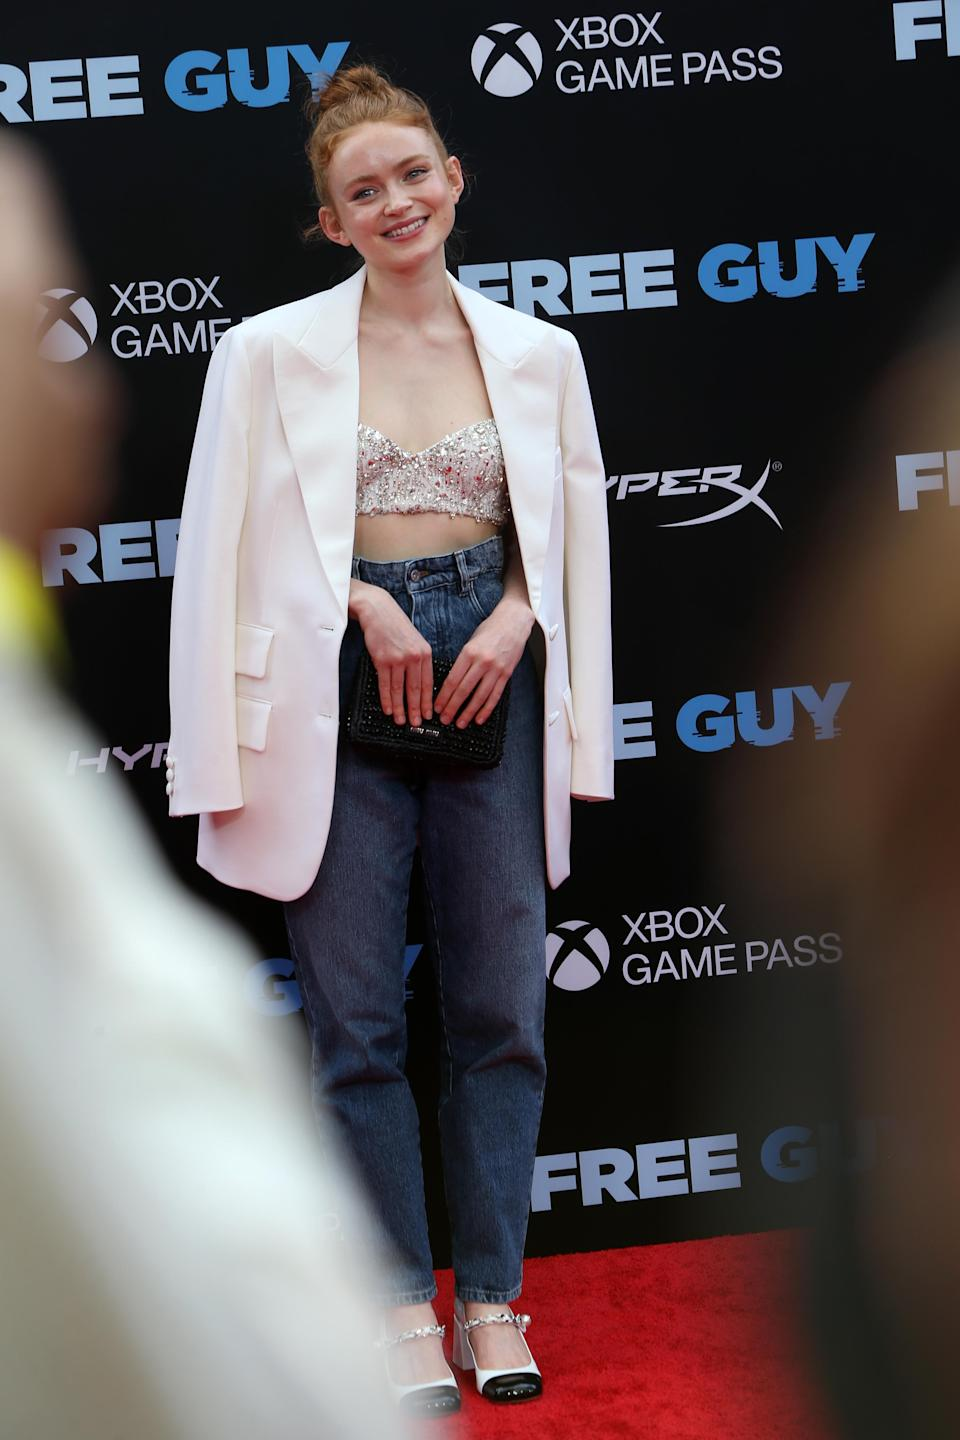 """Sadie Sink attends the premiere of """"Free Guy"""" at AMC Lincoln Square Theater in New York, NY on August 03, 2021. - Credit: Lexie Moreland for Variety"""